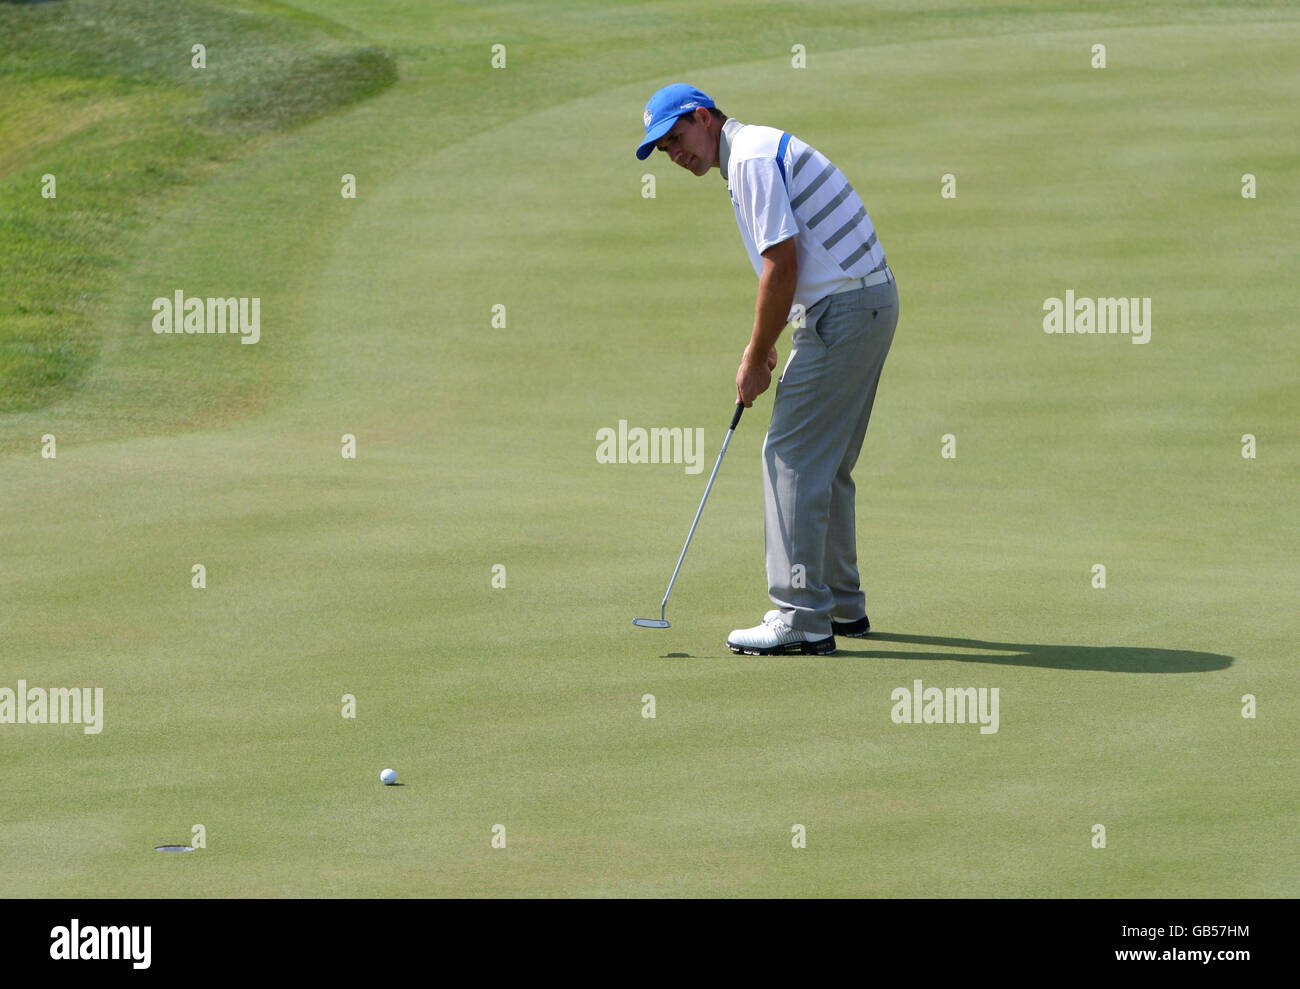 Golf 37th Ryder Cup Usa V Europe Day One Valhalla Golf Club Stock Photo Alamy